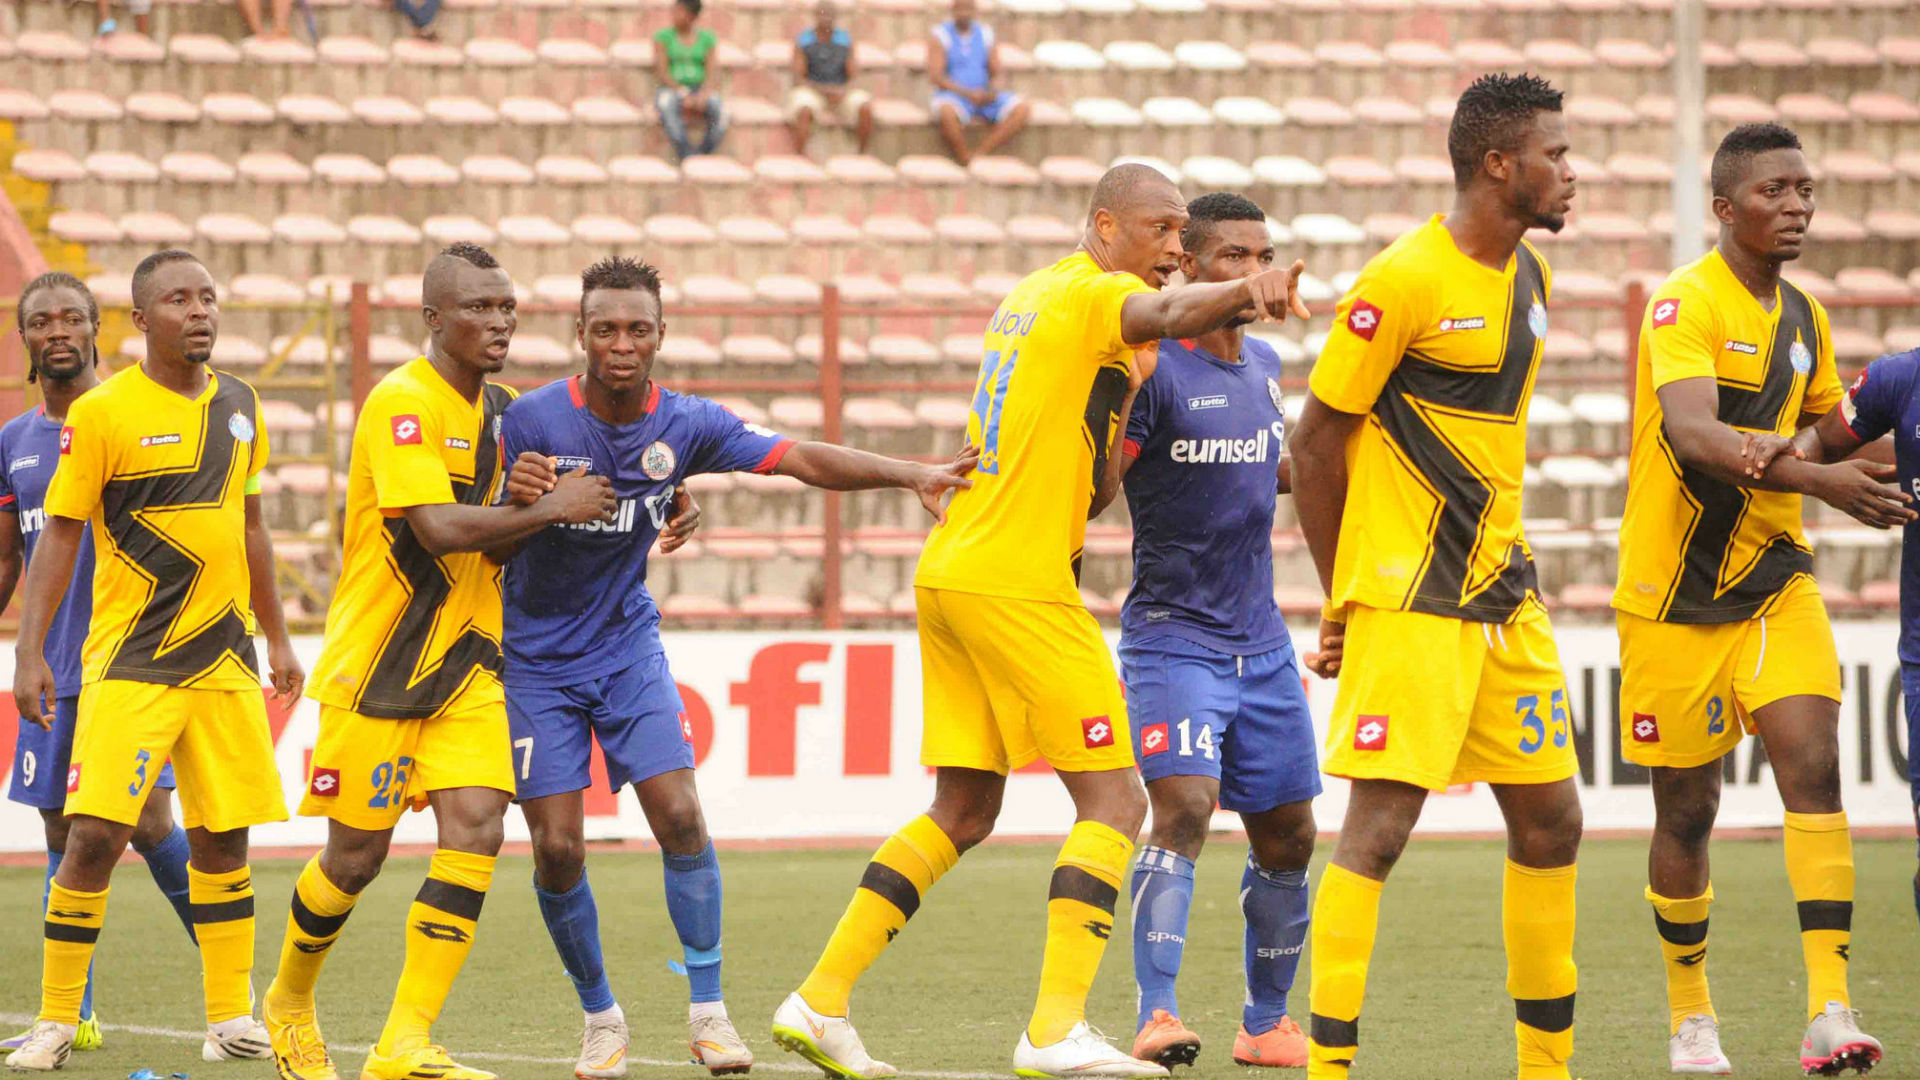 Newly-promoted Warri Wolves set to name new coach to replace Elechi